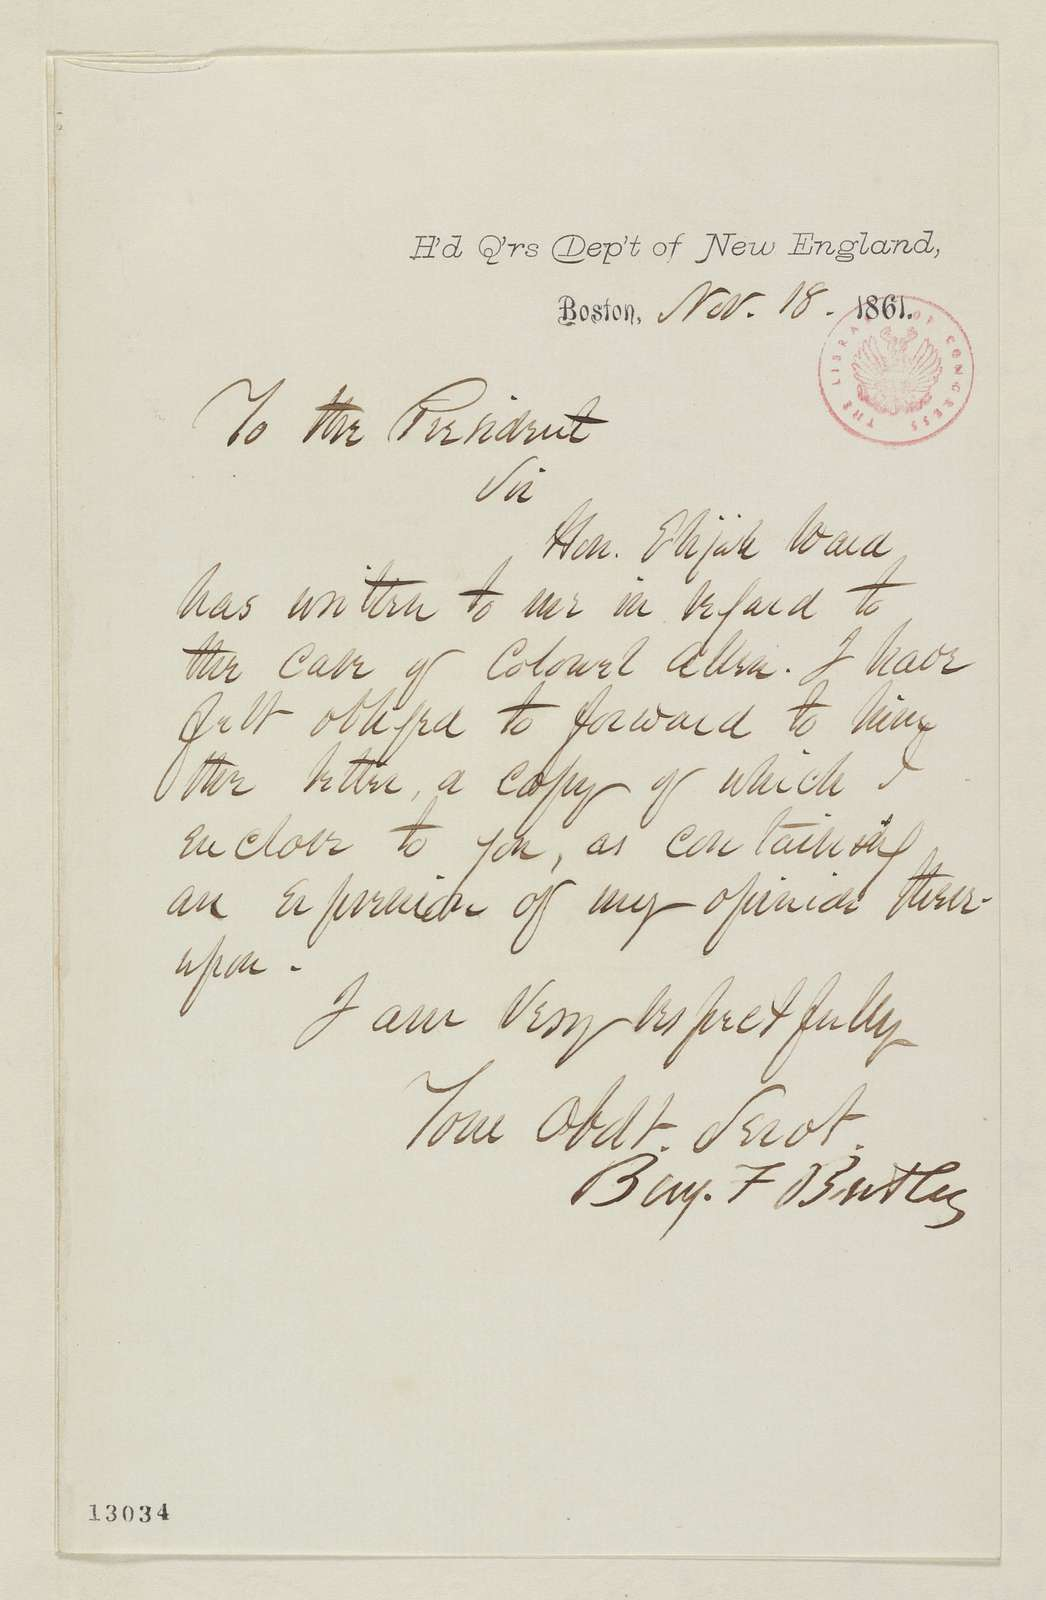 Abraham Lincoln papers: Series 1. General Correspondence. 1833-1916: Benjamin F. Butler to Abraham Lincoln, Monday, November 18, 1861 (Cover letter)